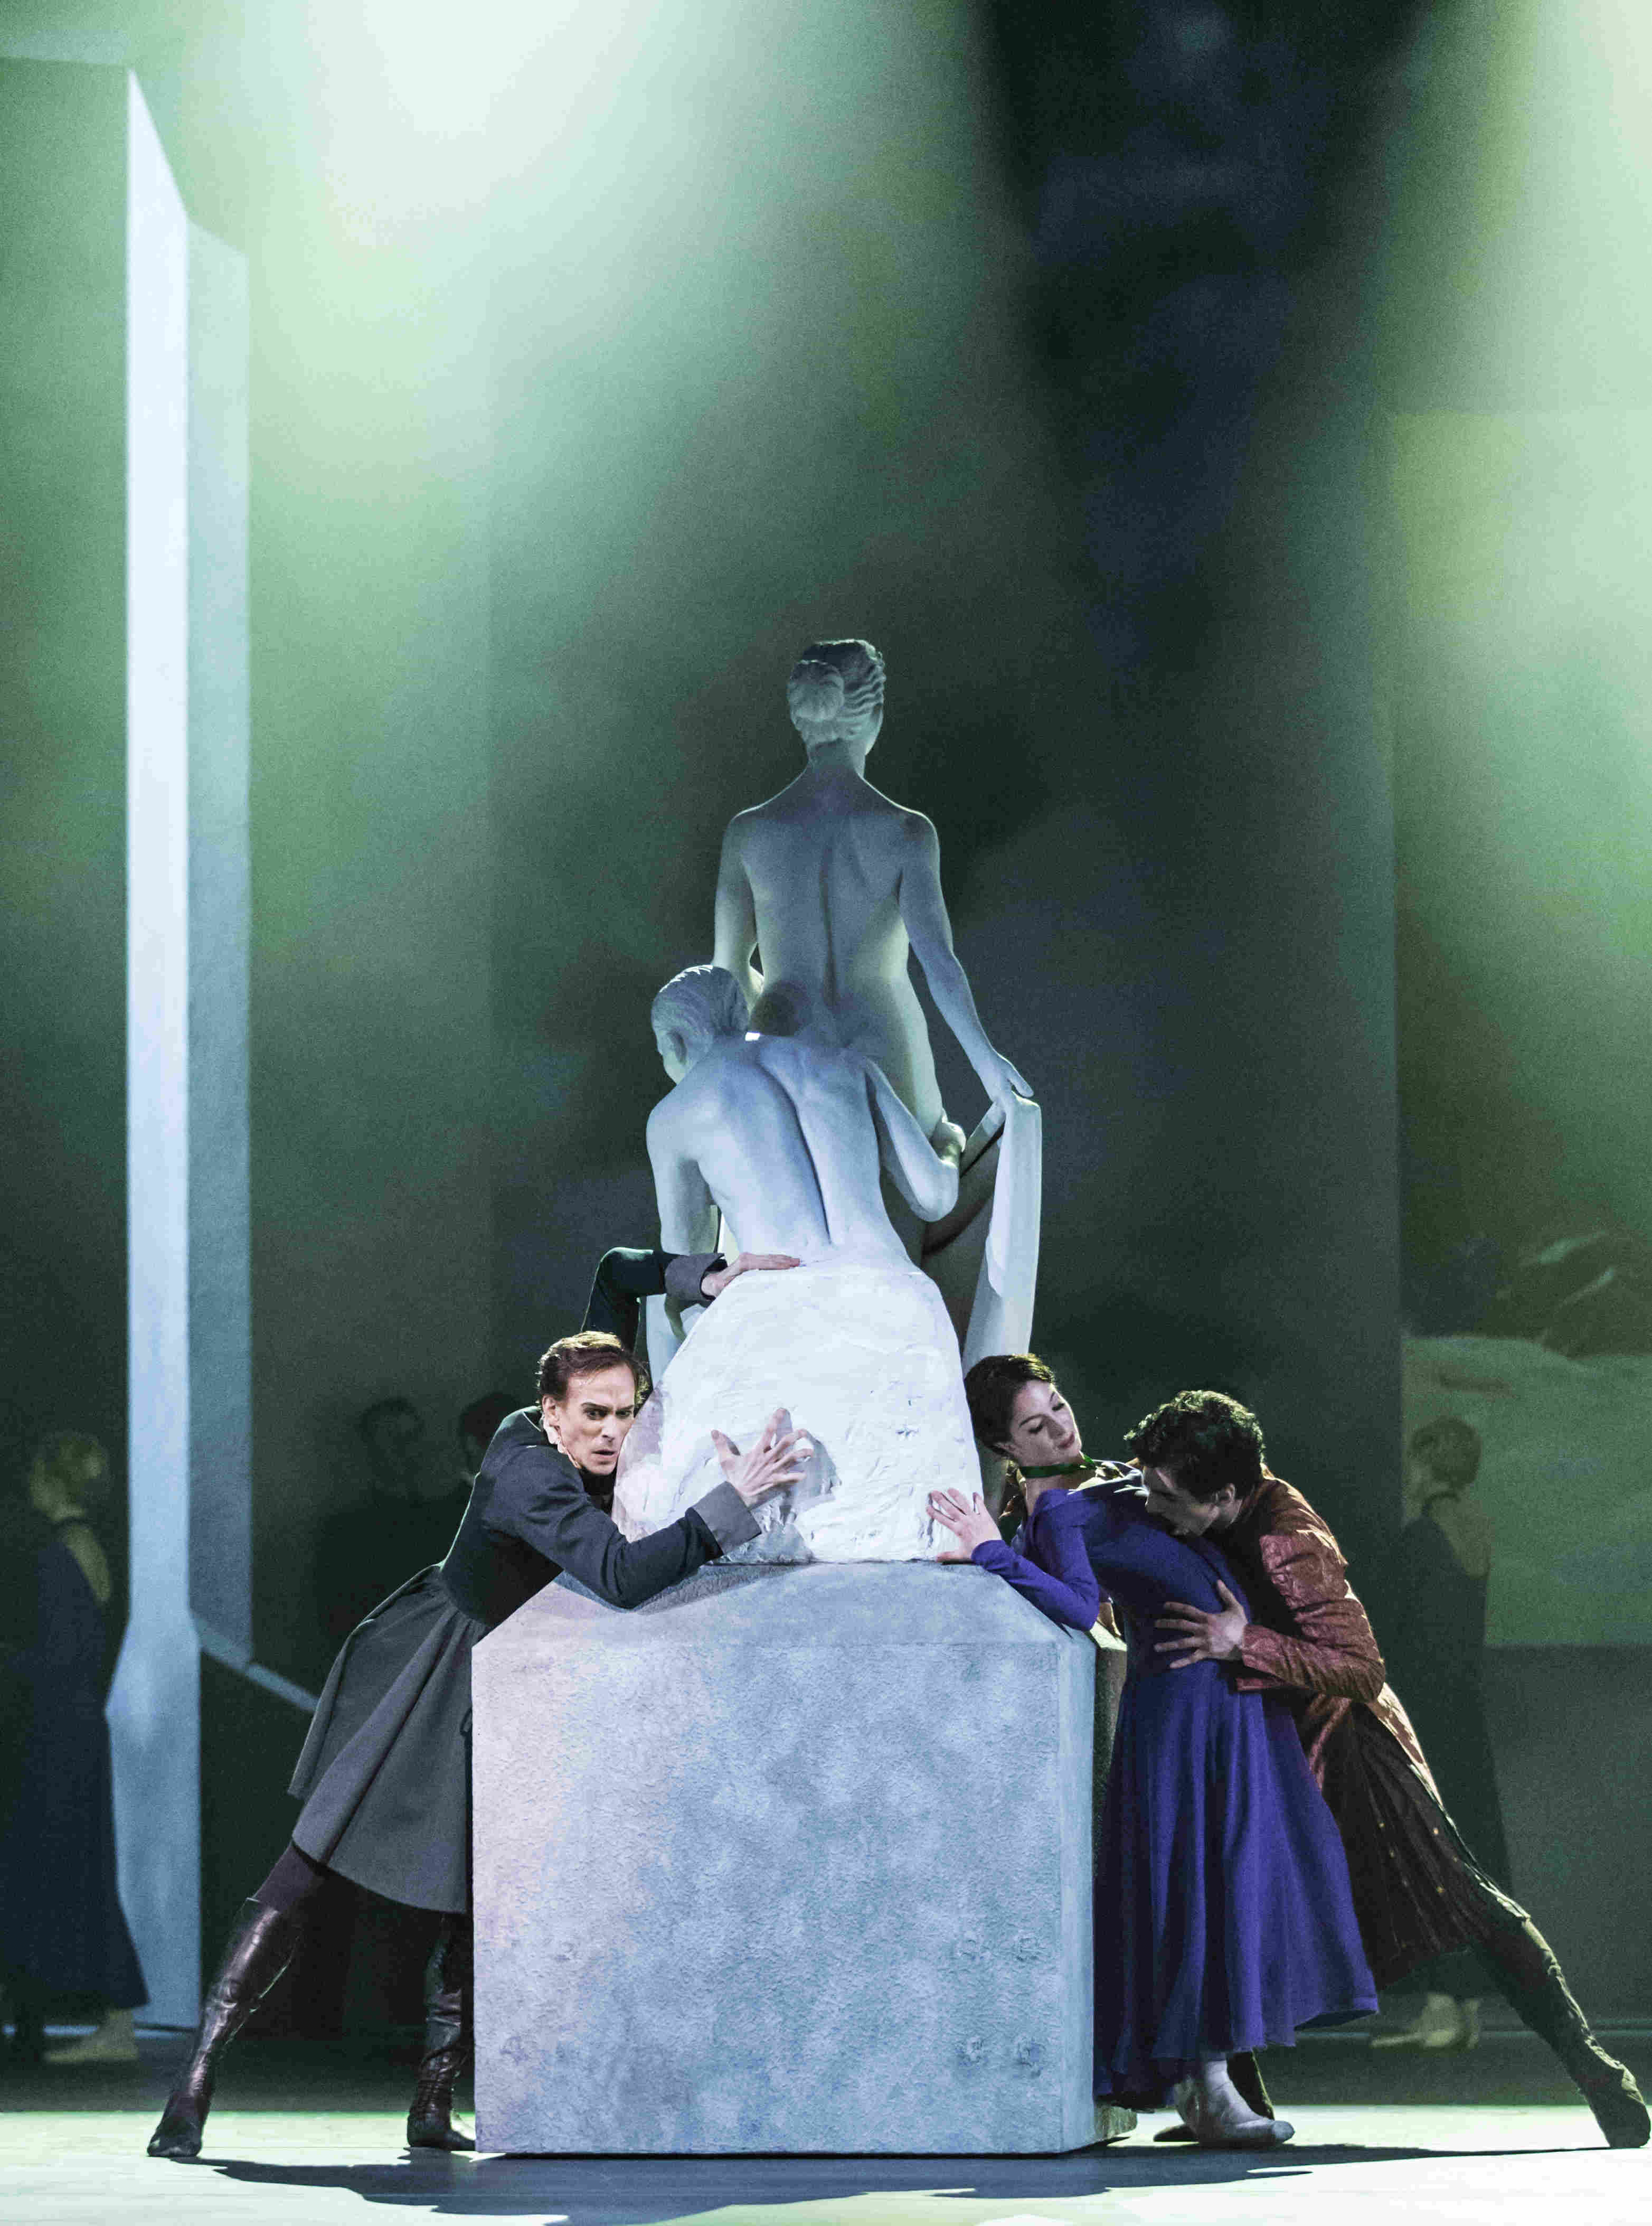 Ed Watson as Leontes, Lauren Cuthbertson as Hermione, Federico Bonelli as Polixenes in The Winter's Tale